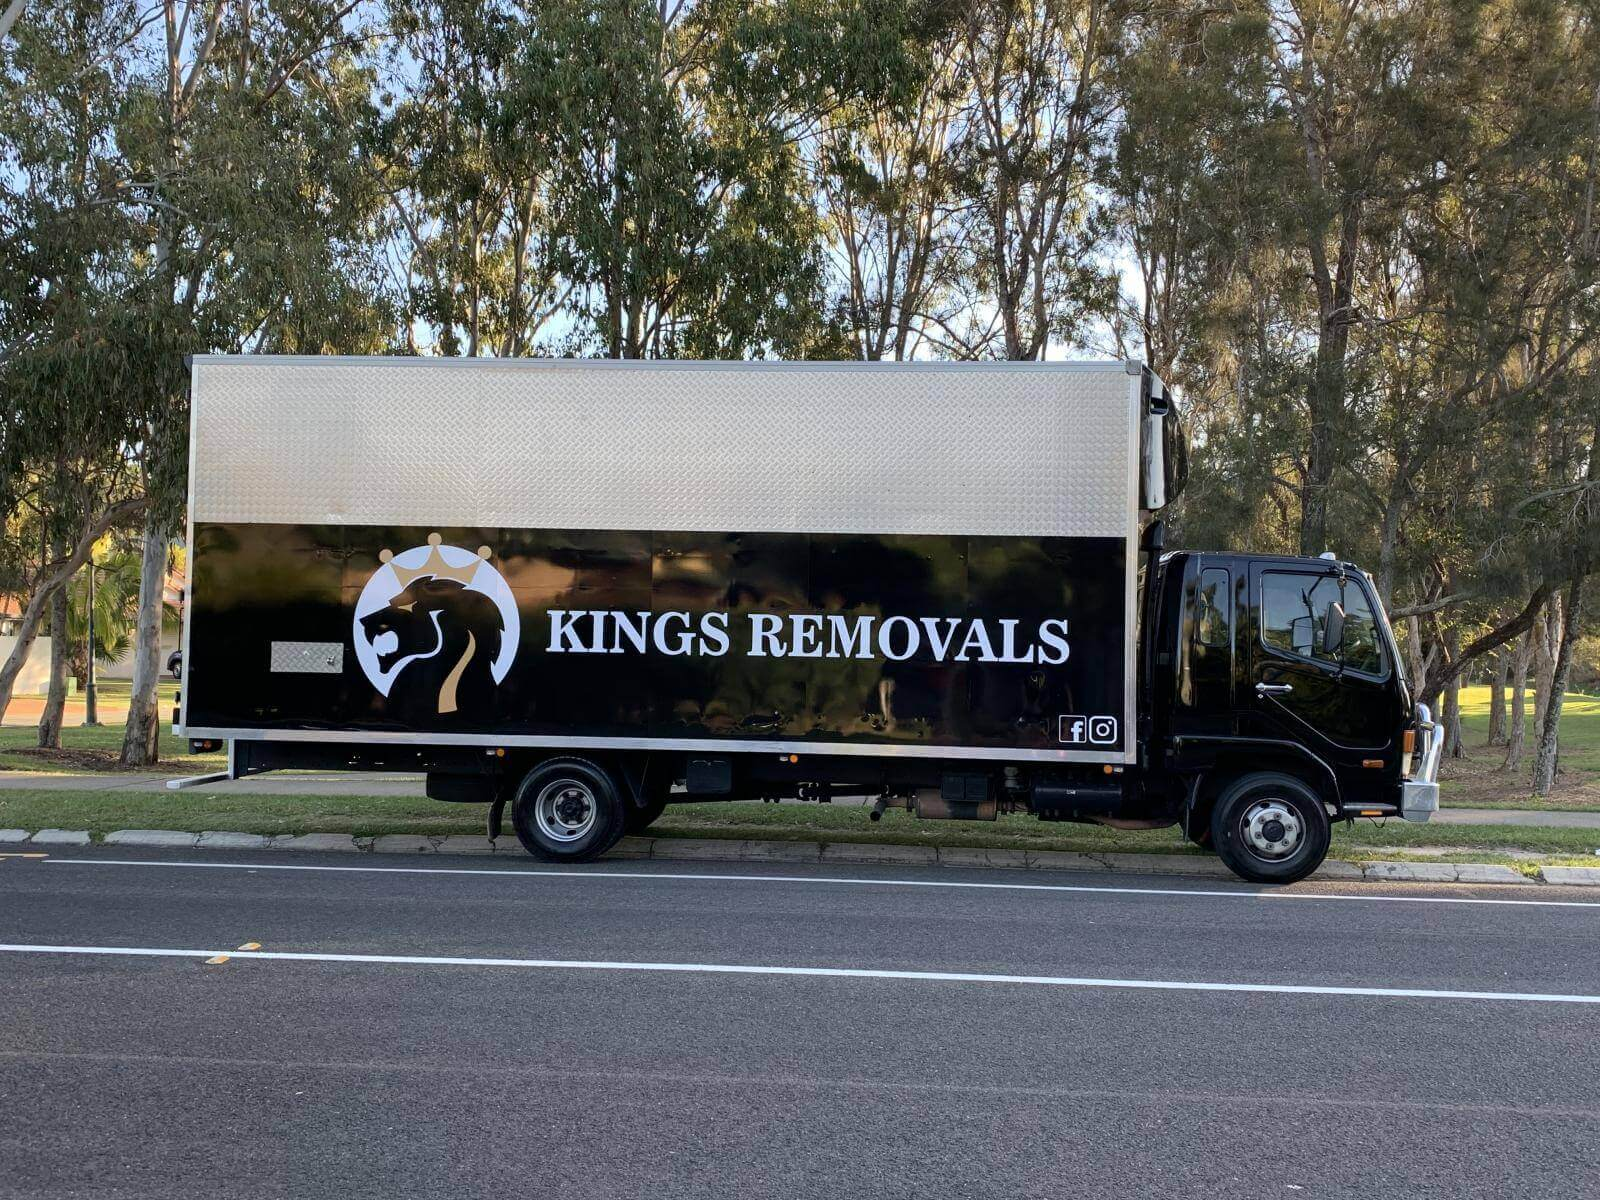 Kings removals Sunshine coast – New Signage on Removal Truck